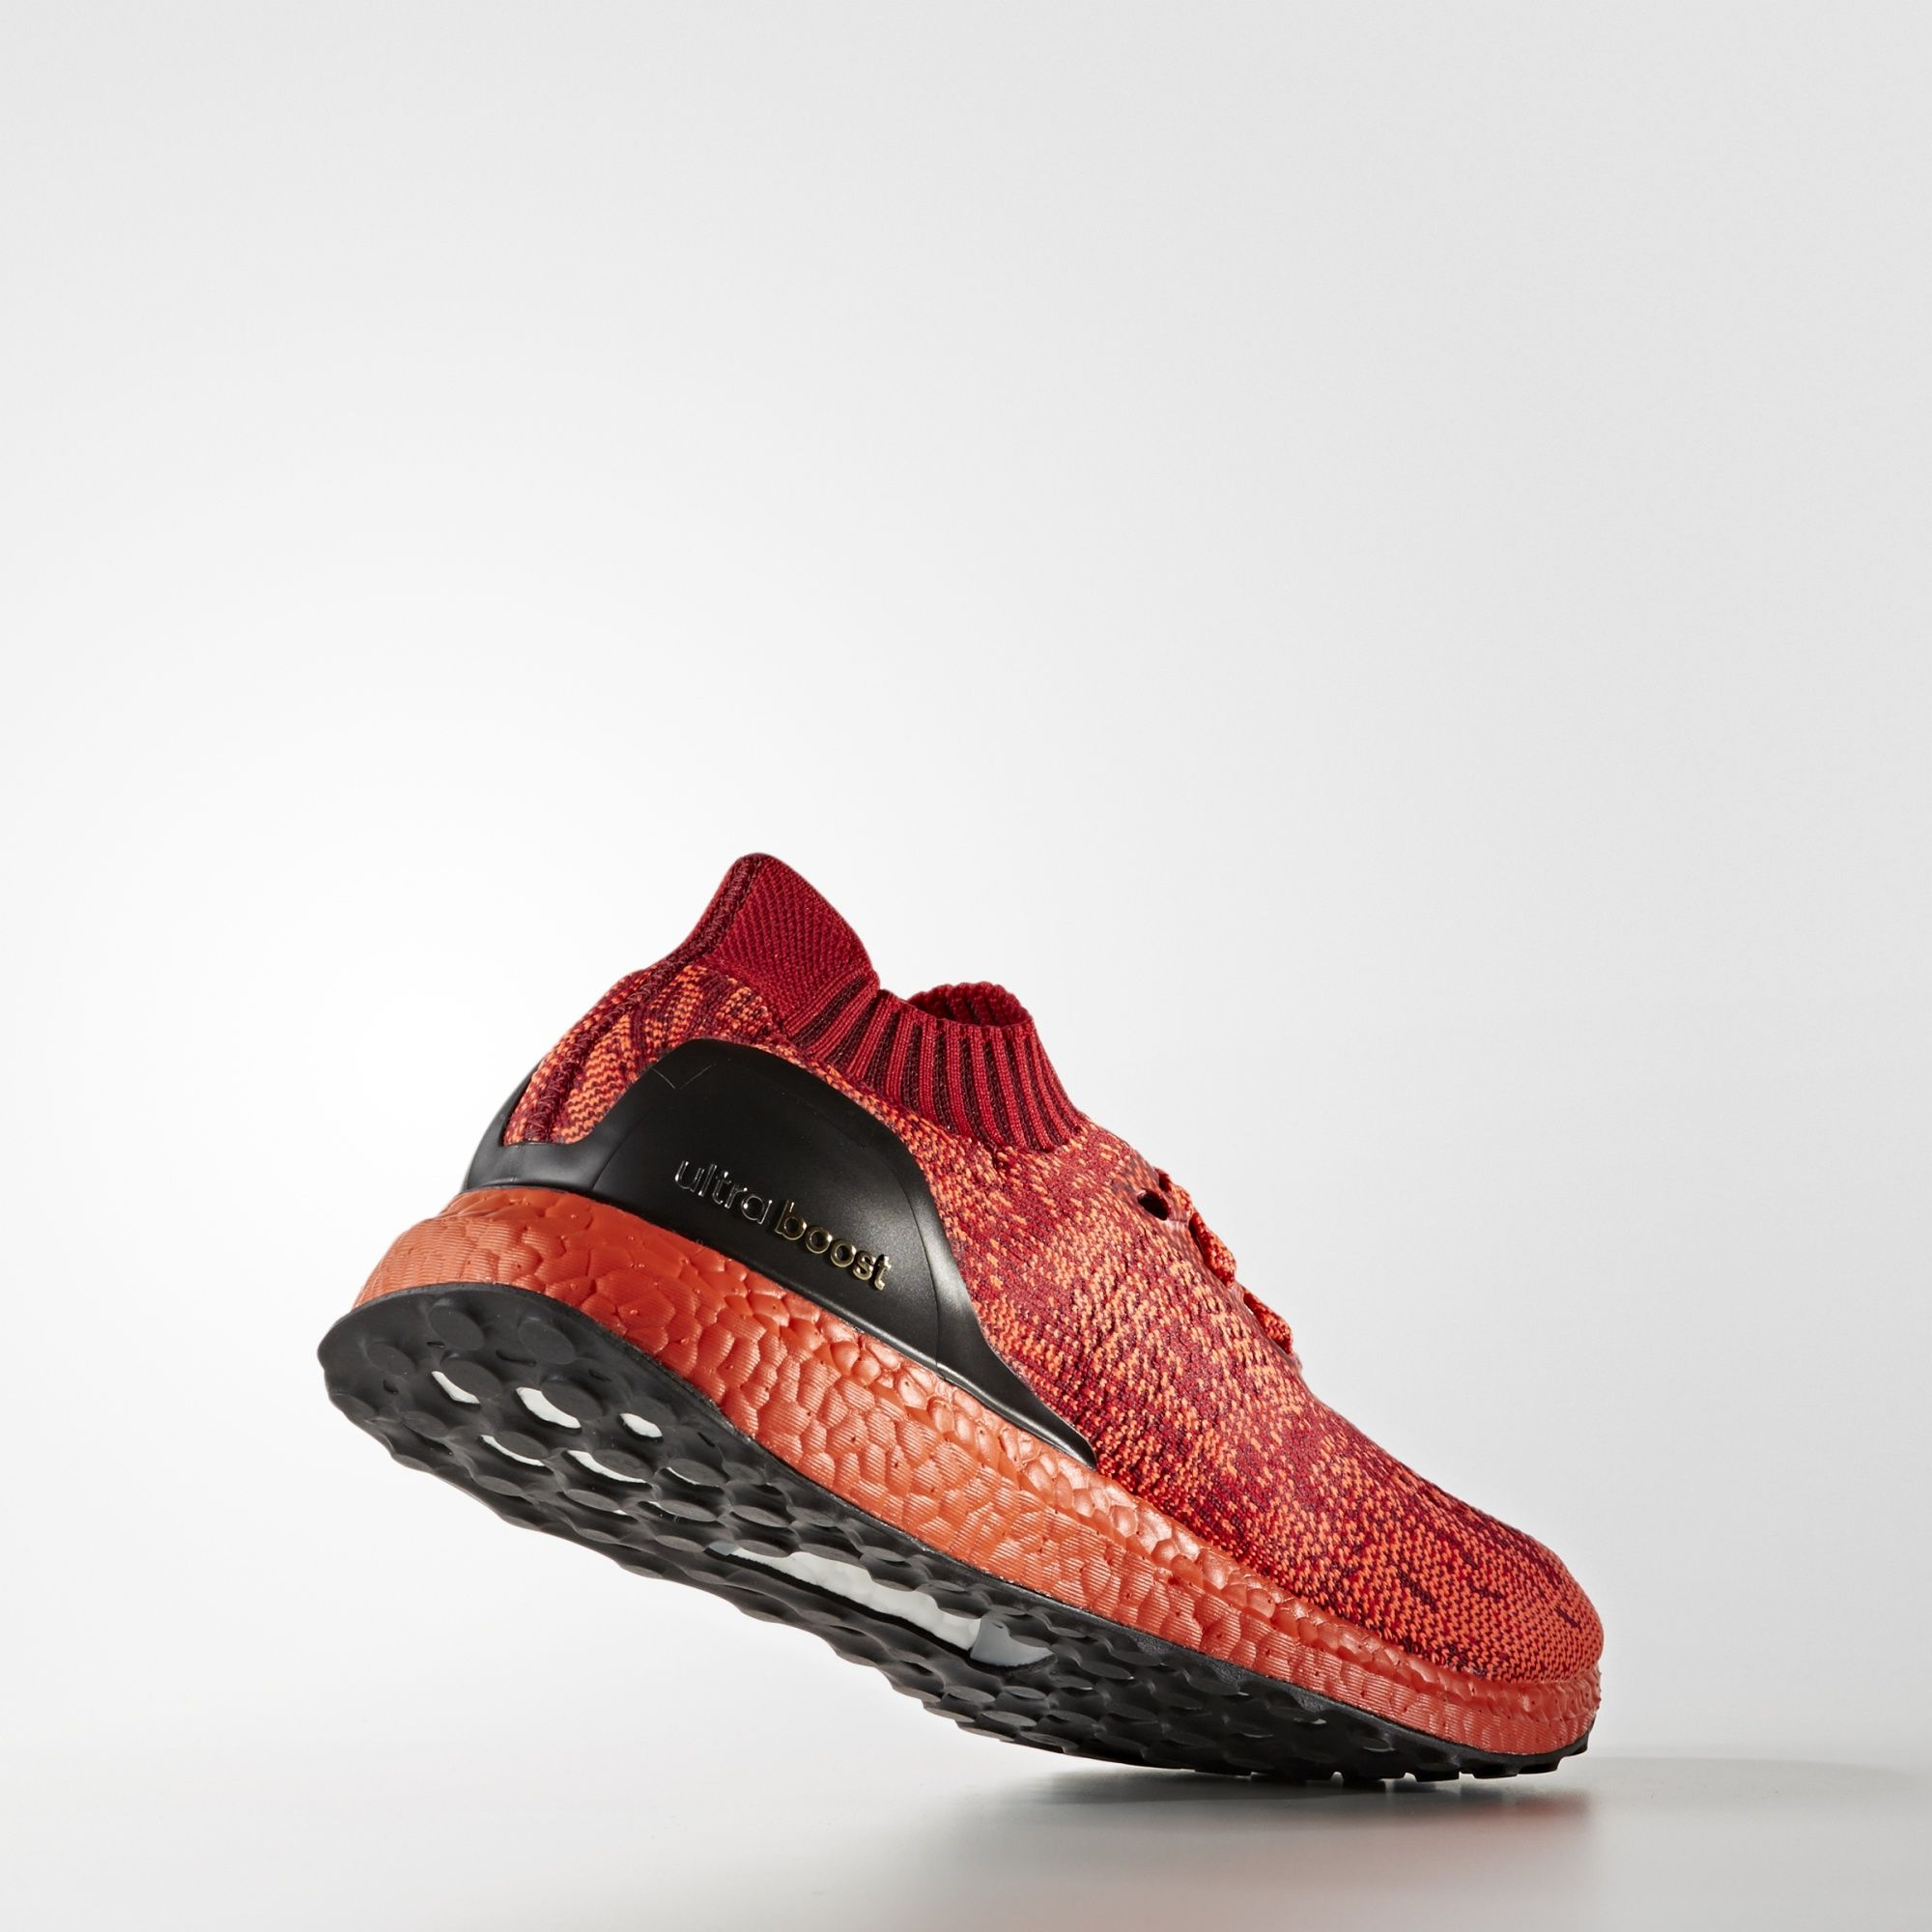 Adidas Ultra Boost Uncaged LTD Red | home